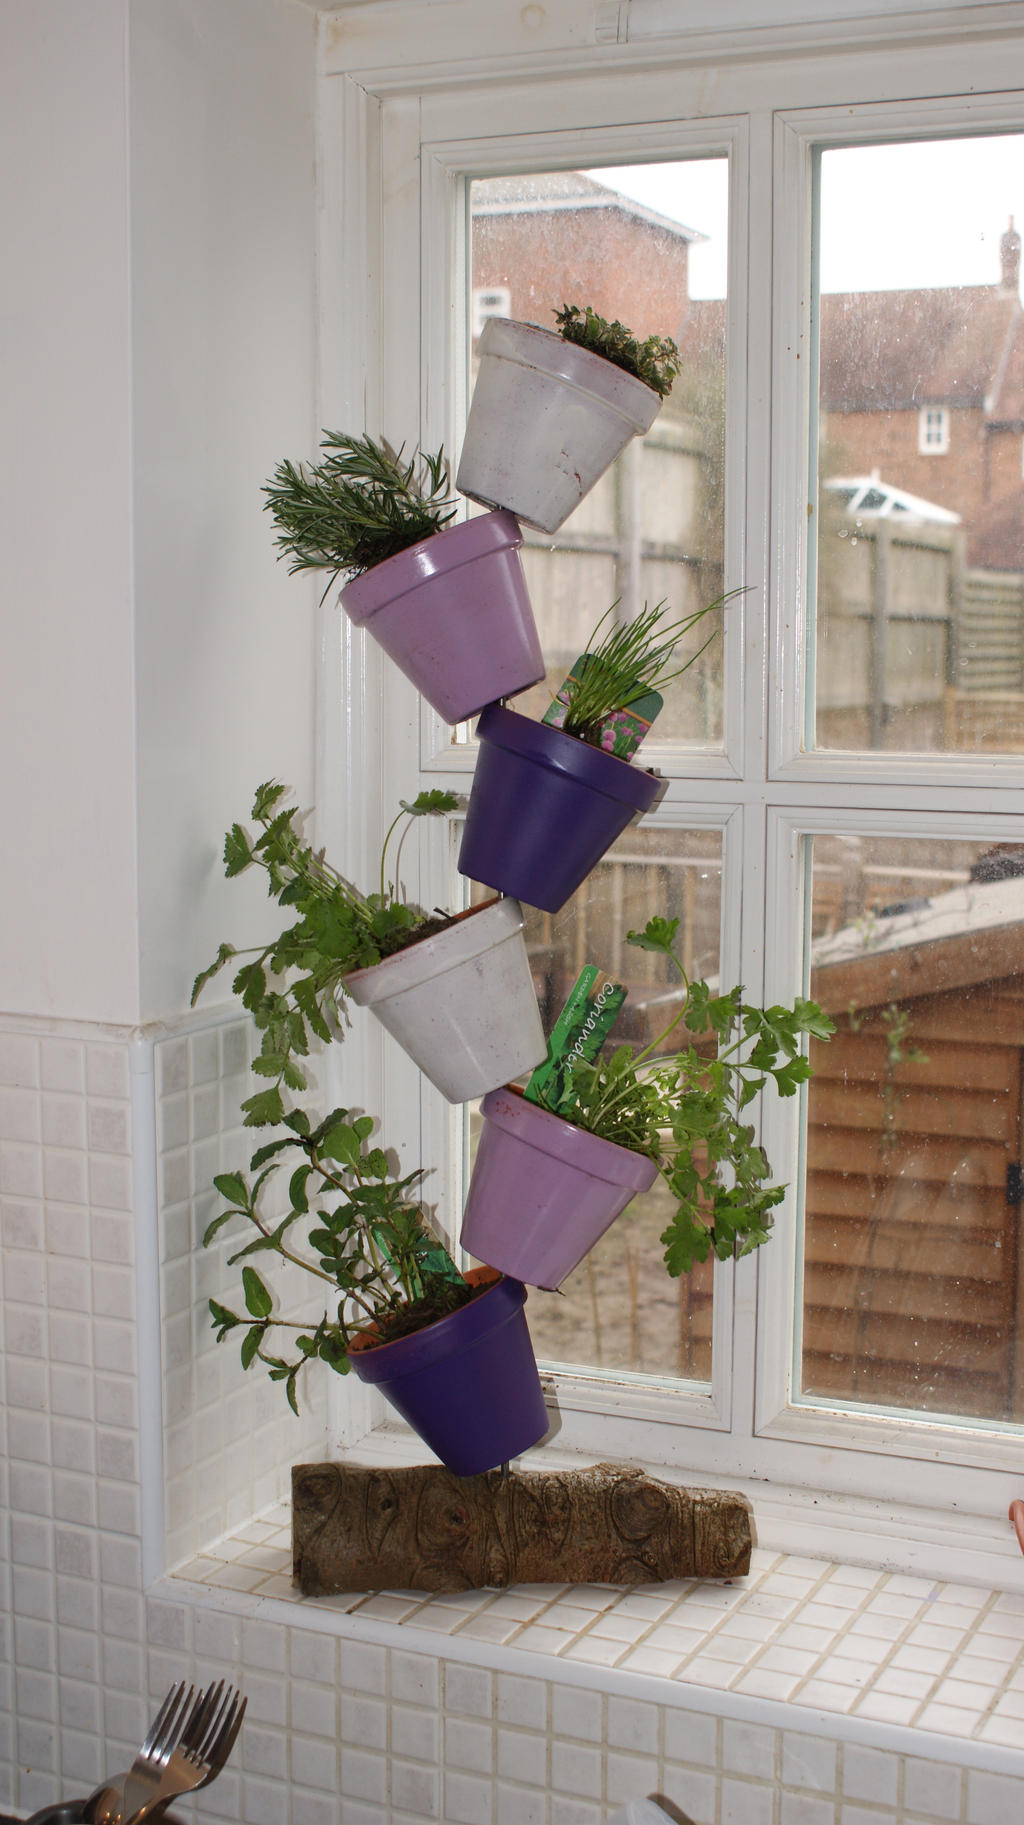 Herb pot stand by JustJ20